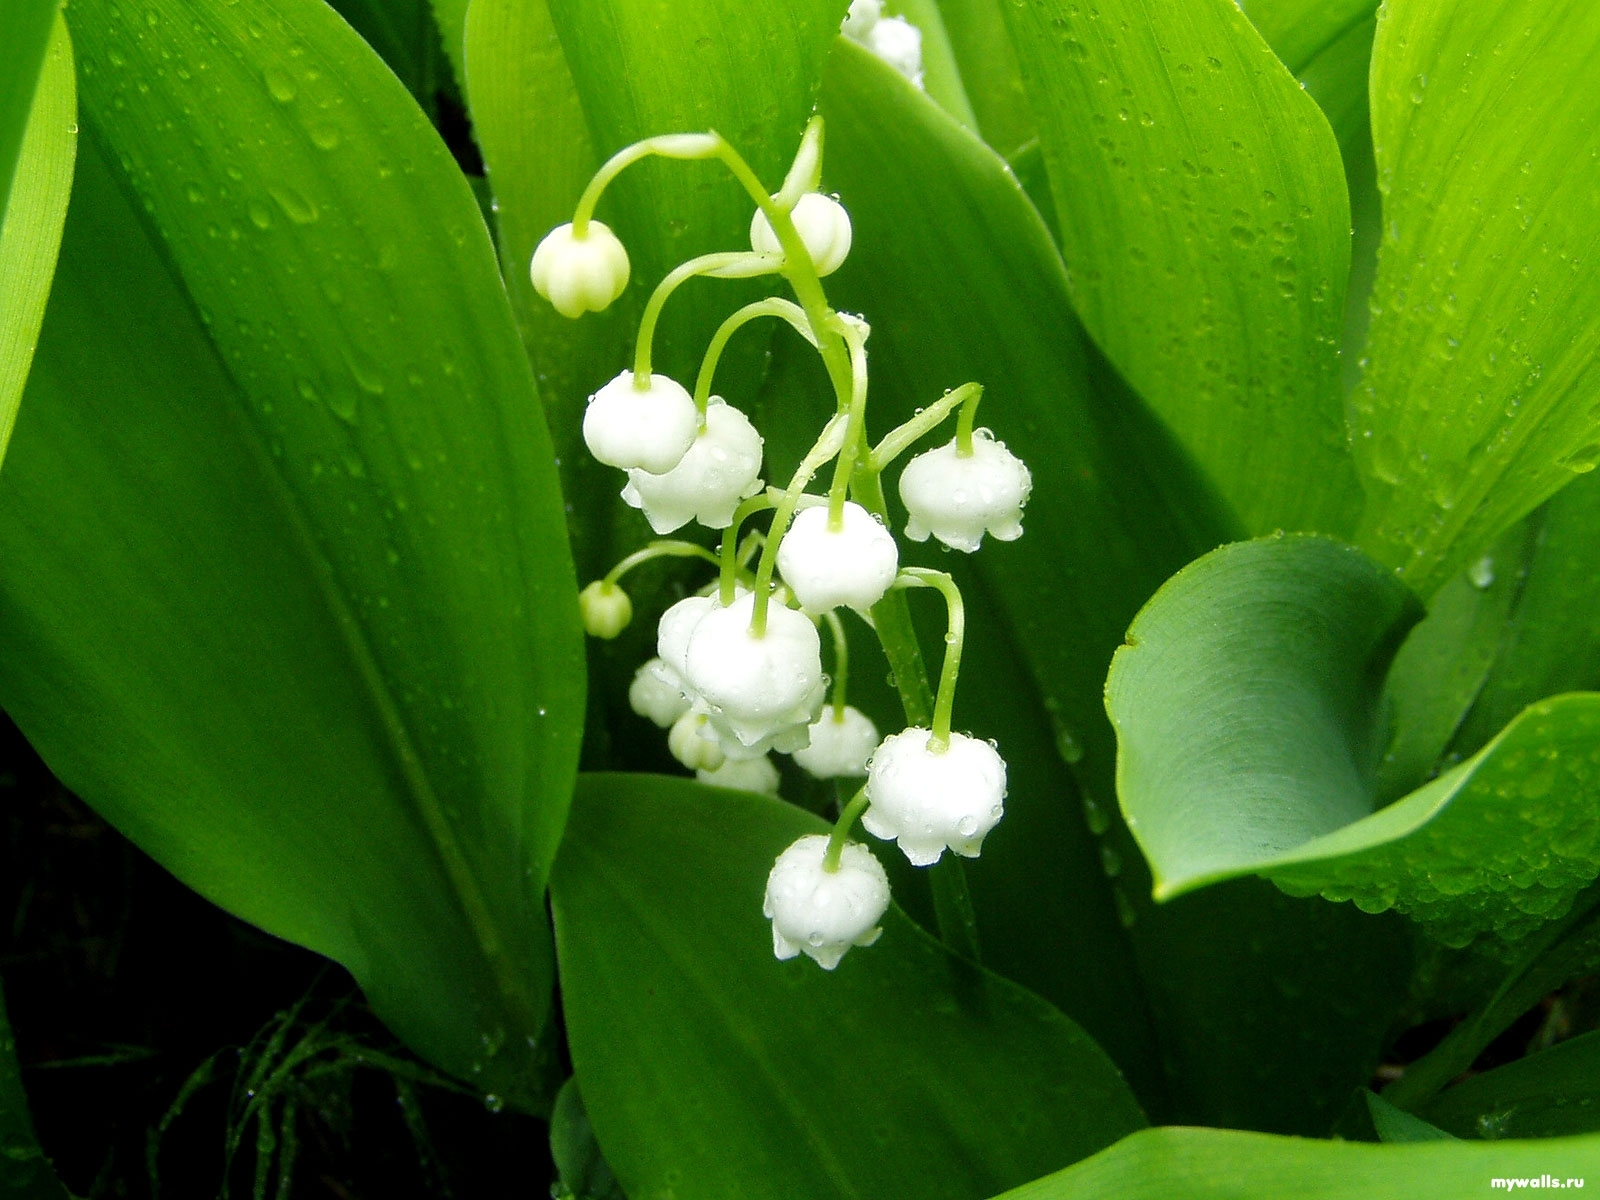 13515 download wallpaper Flowers, Plants, Lily Of The Valley screensavers and pictures for free